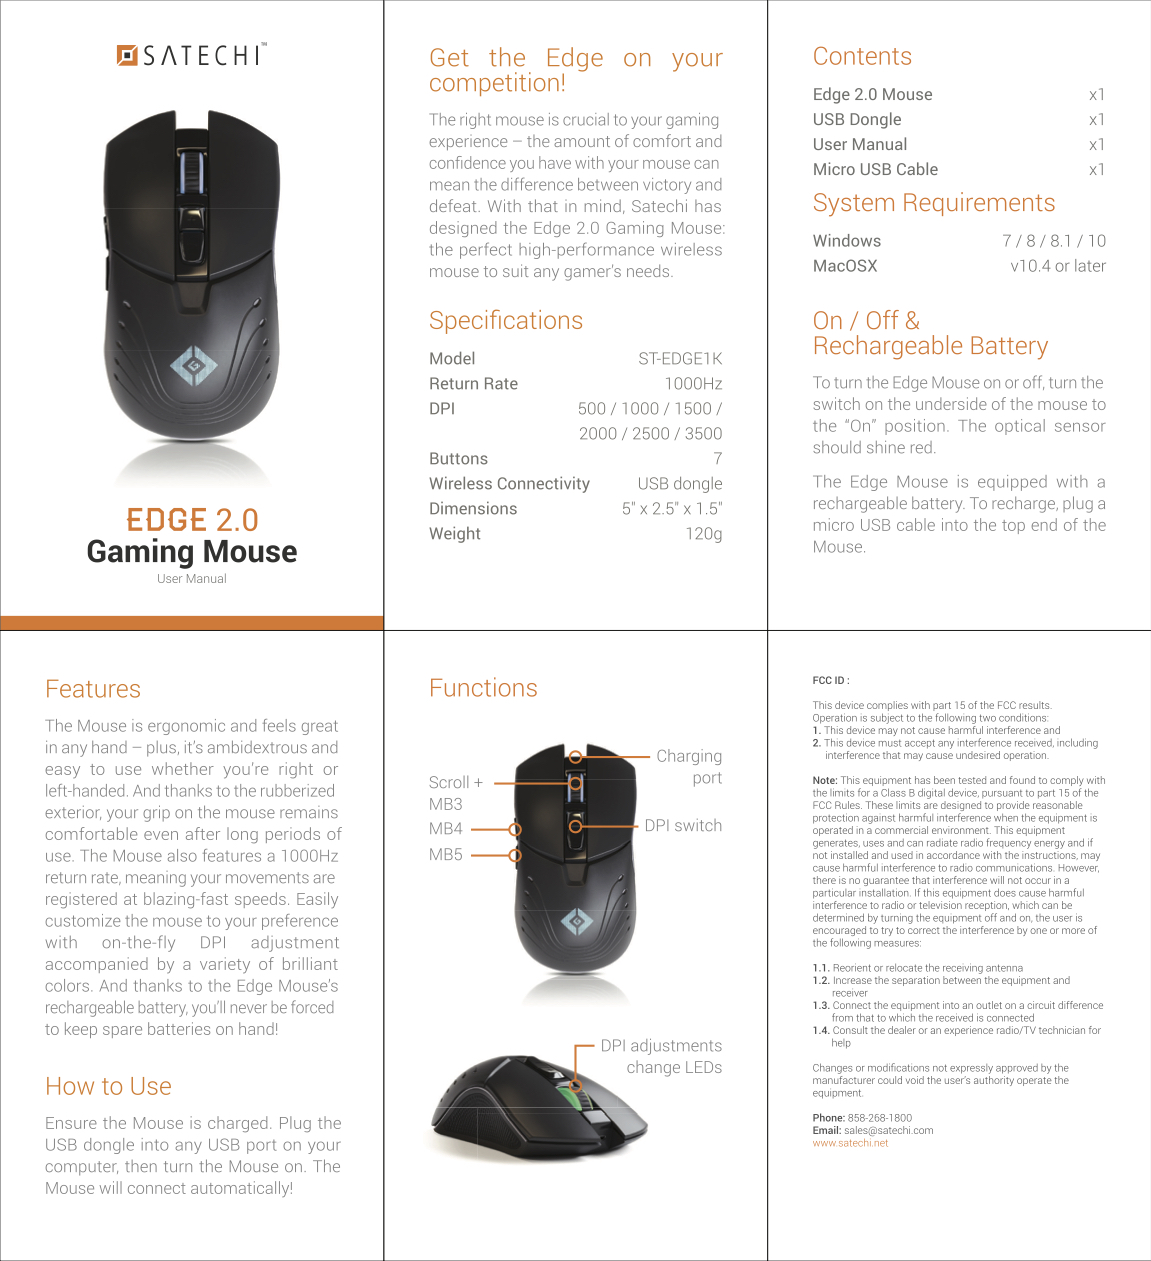 edge_mouse_2_manual_v2.jpg